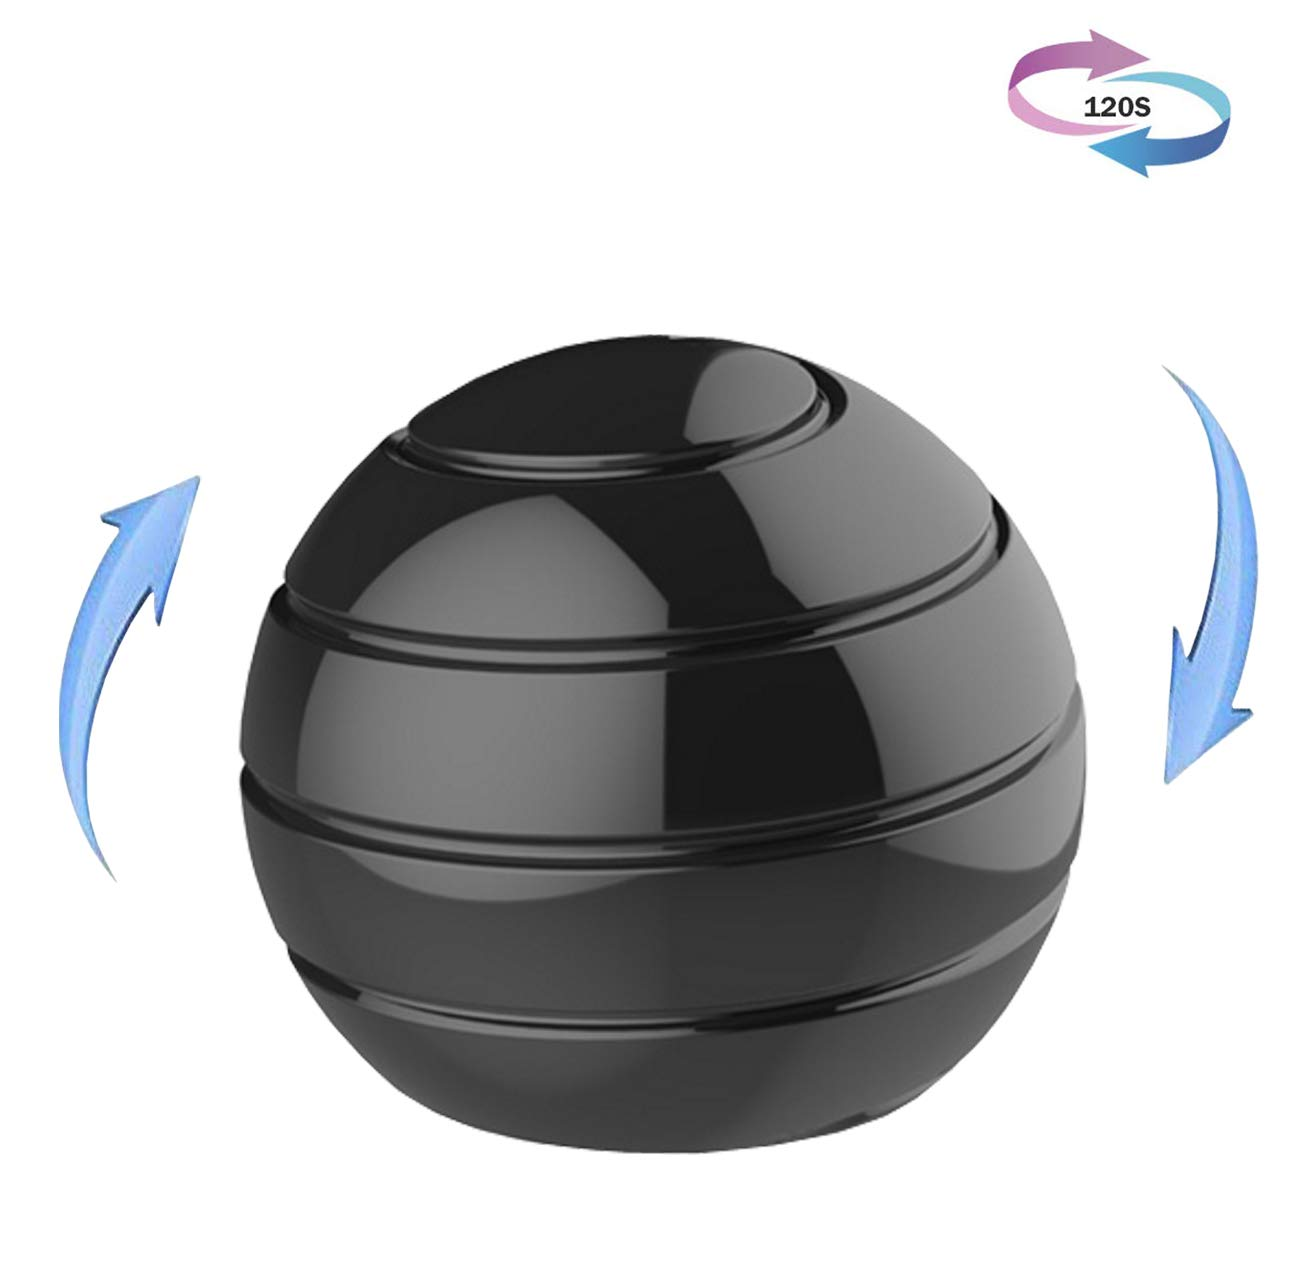 Kinetic Desk Stress Toy, Fidget Spinner Toys Ball for Adults Kids, Optical Illusion Metal Spinning Ball for ADHD & Anxiety Relief & Relaxing & Fucus Toys (Black)